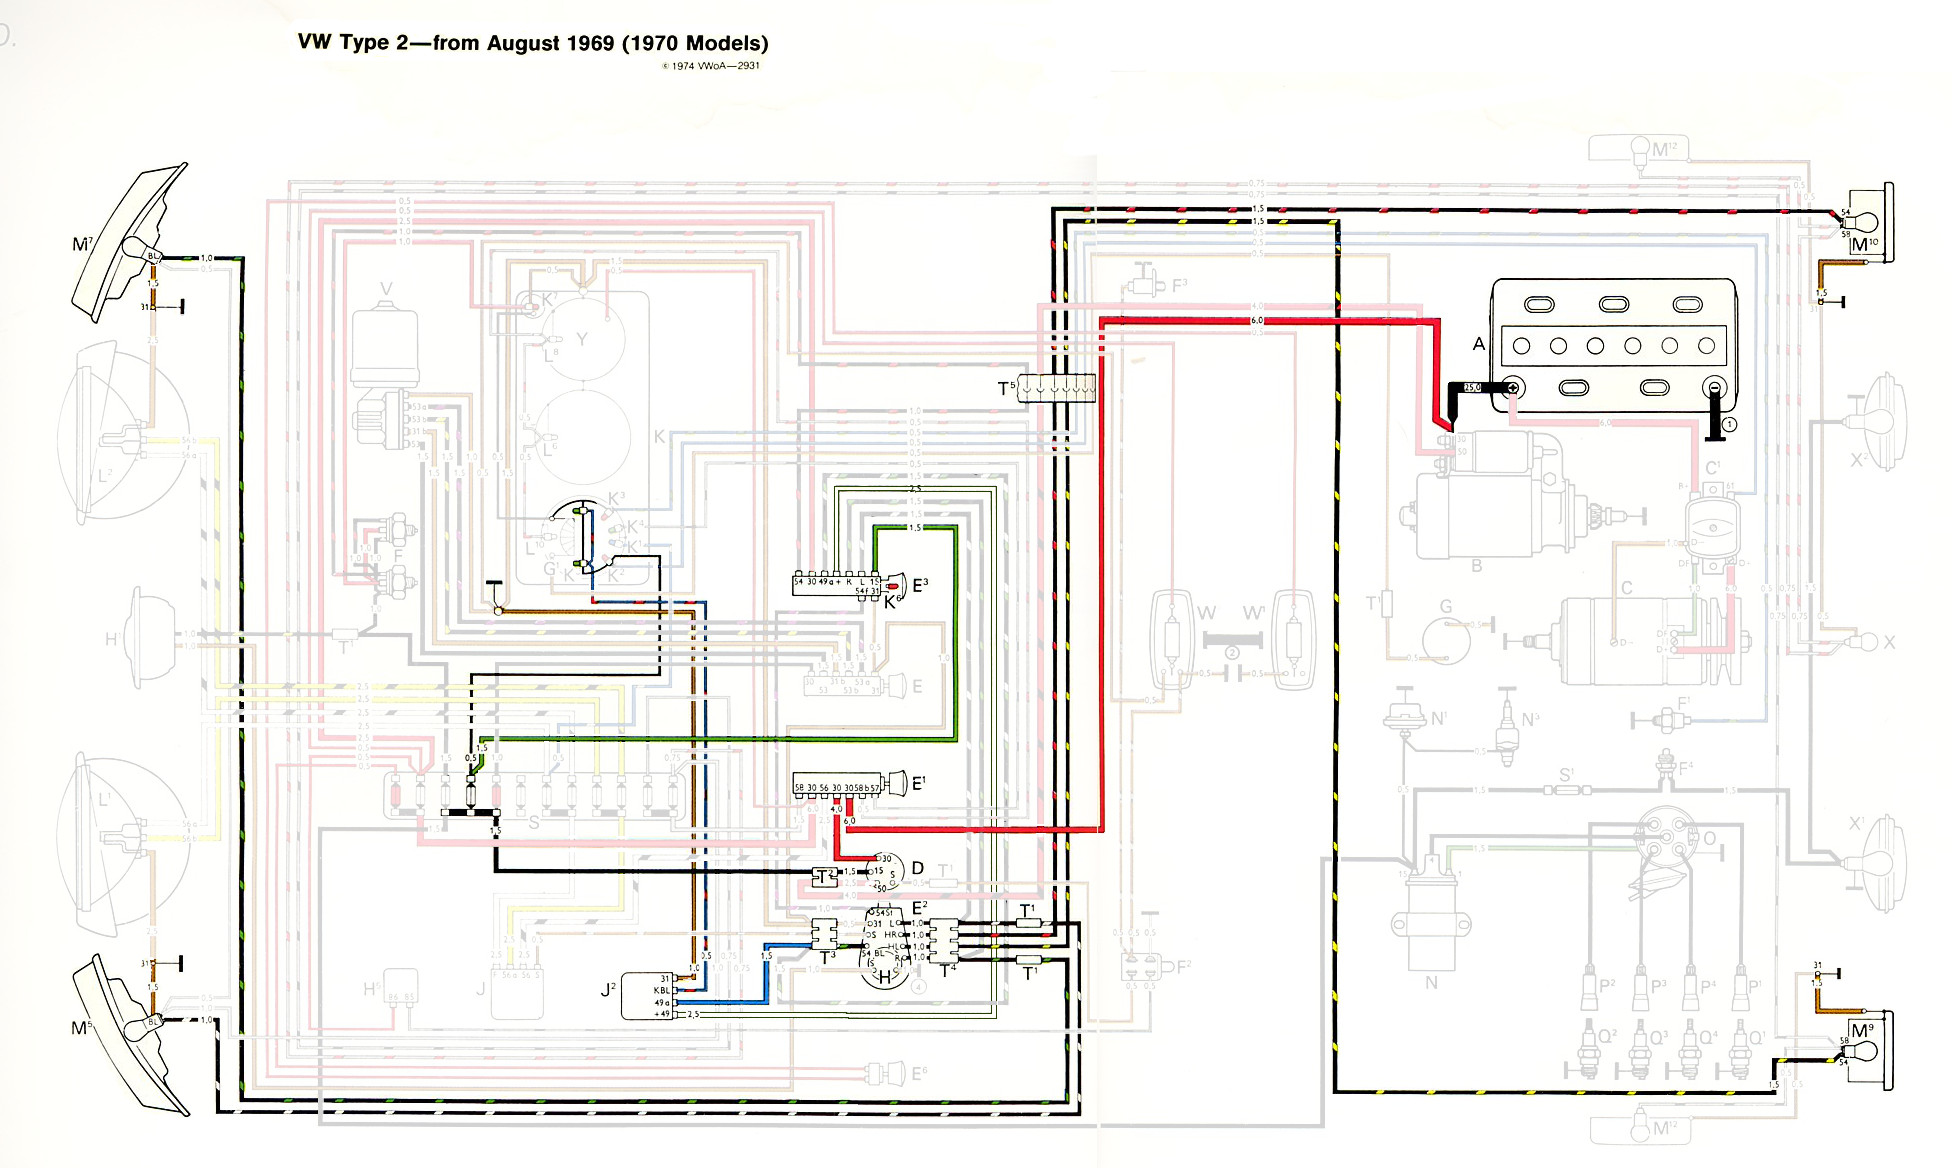 thesamba com type 2 wiring diagrams rh thesamba com 1973 VW Bus Dashboard  Wiring-Diagram 1973 VW Bus Dashboard Wiring-Diagram